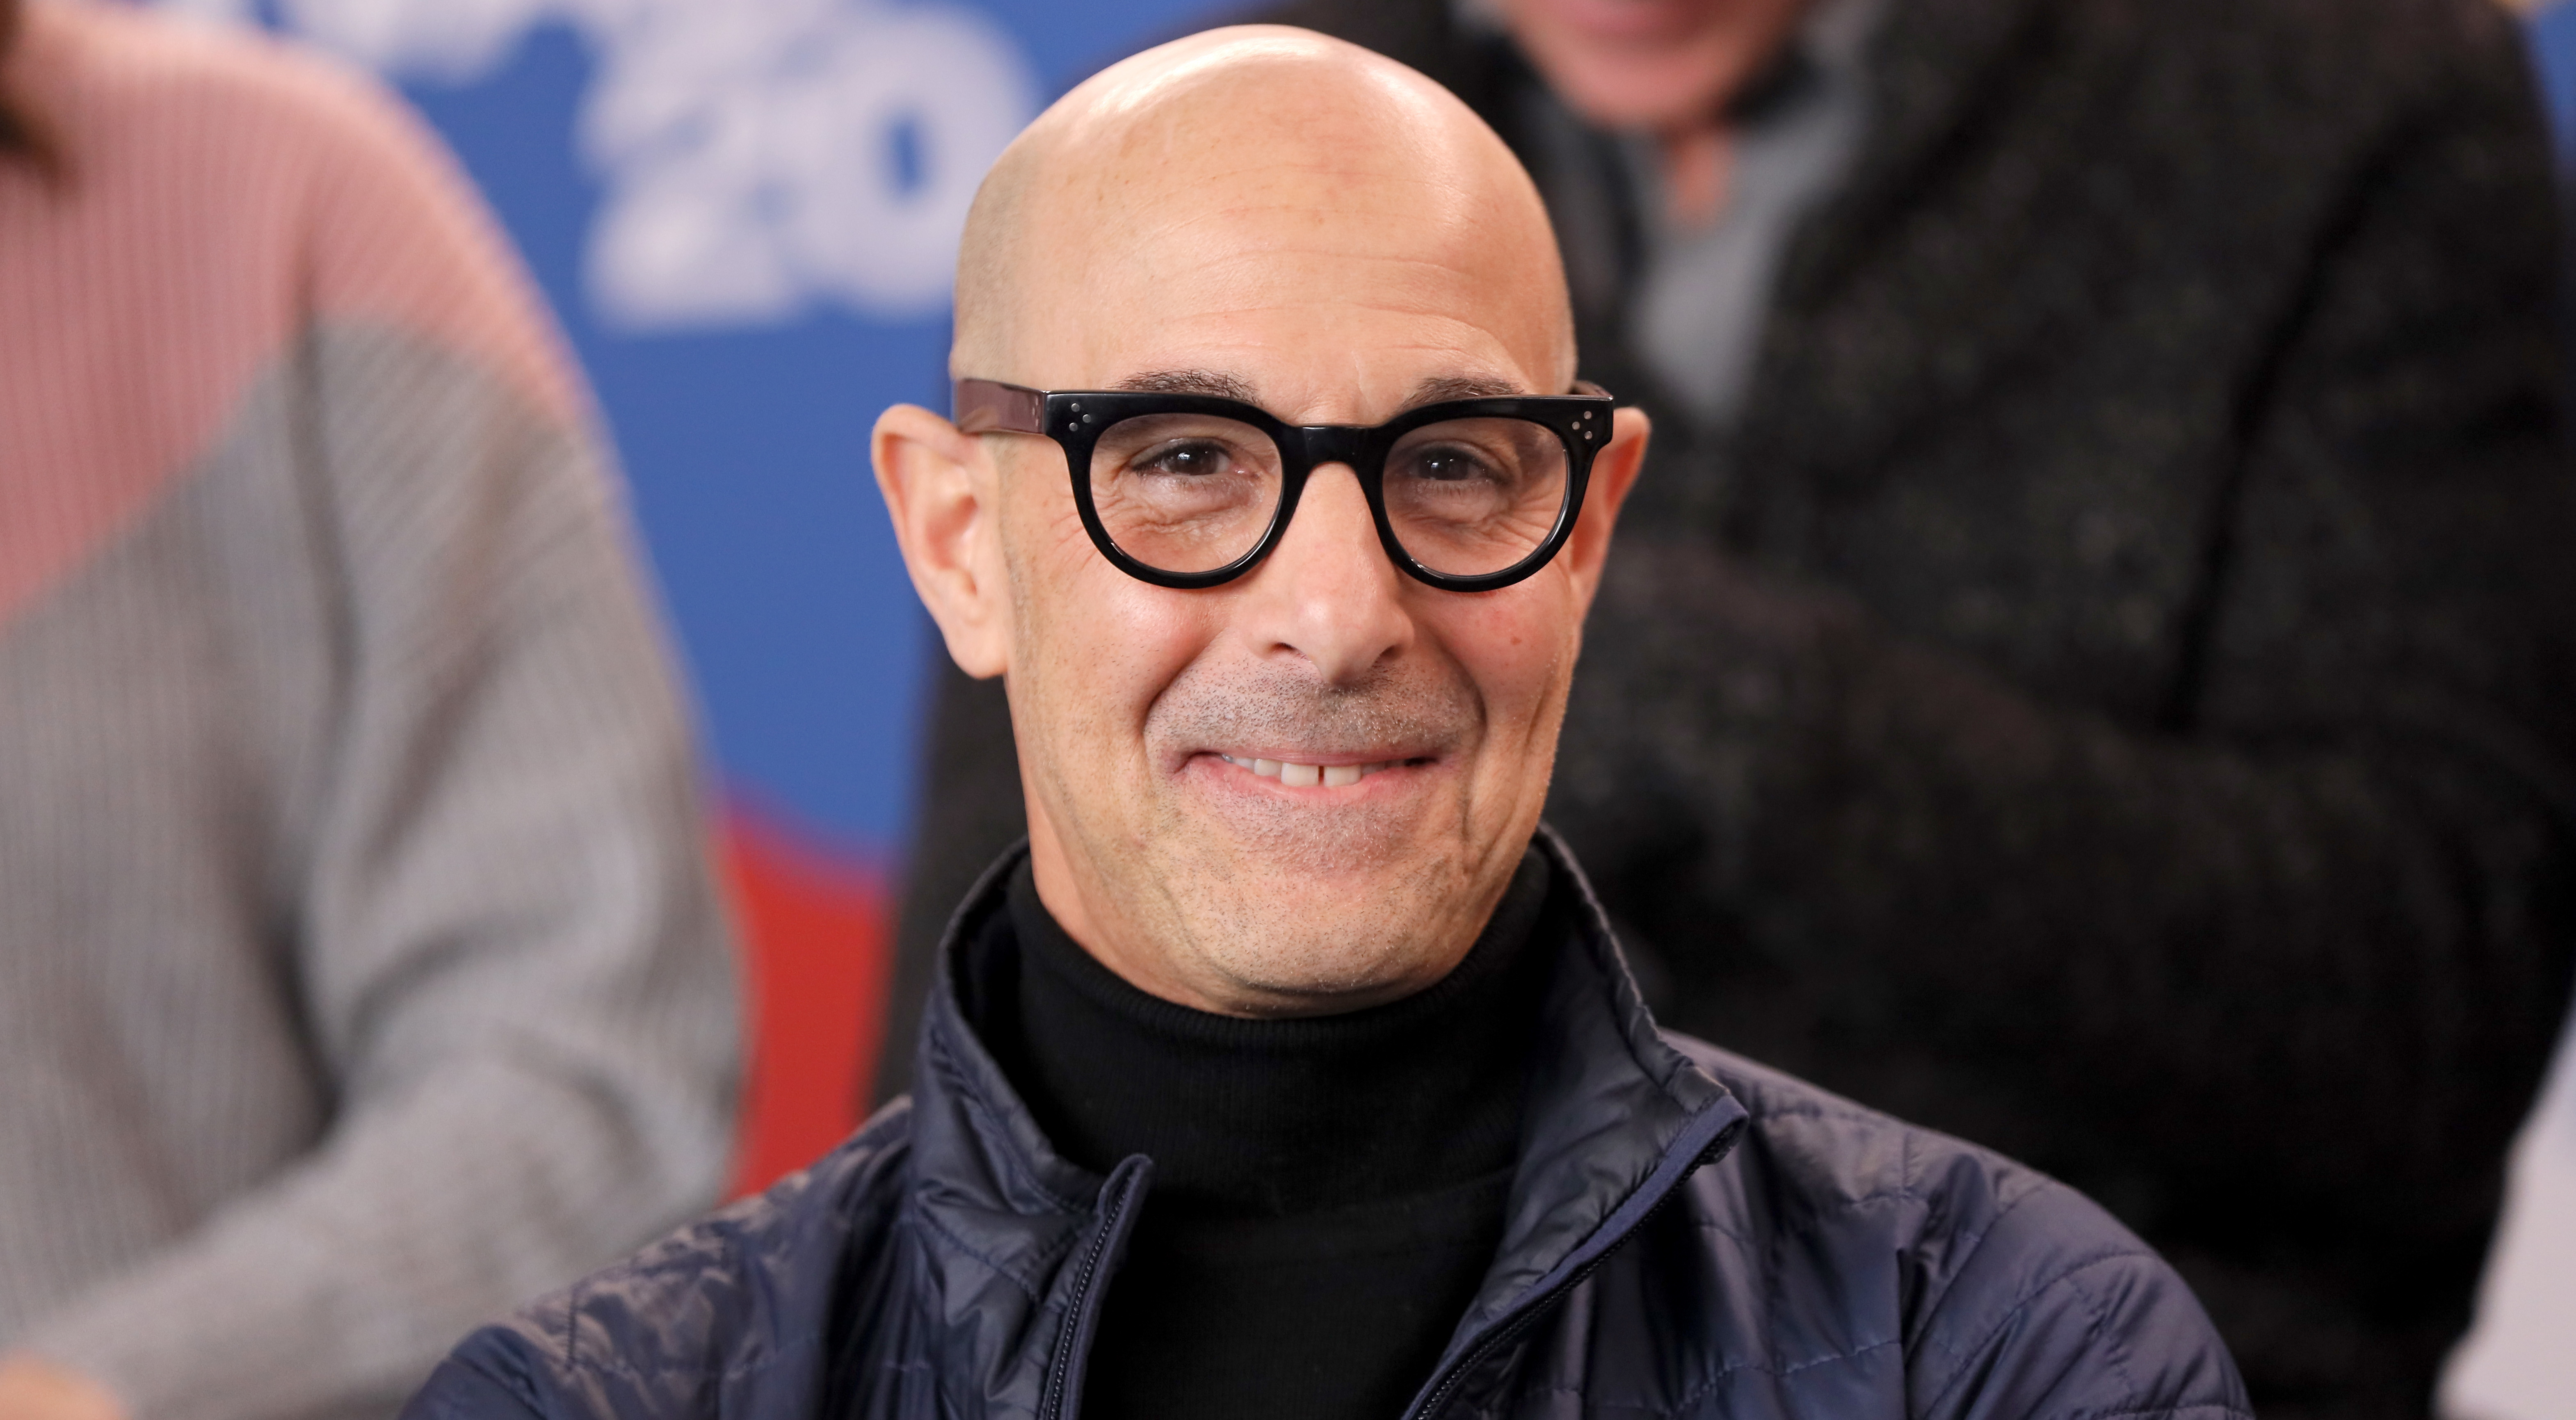 Stanley Tucci Is Writing a Food Memoir